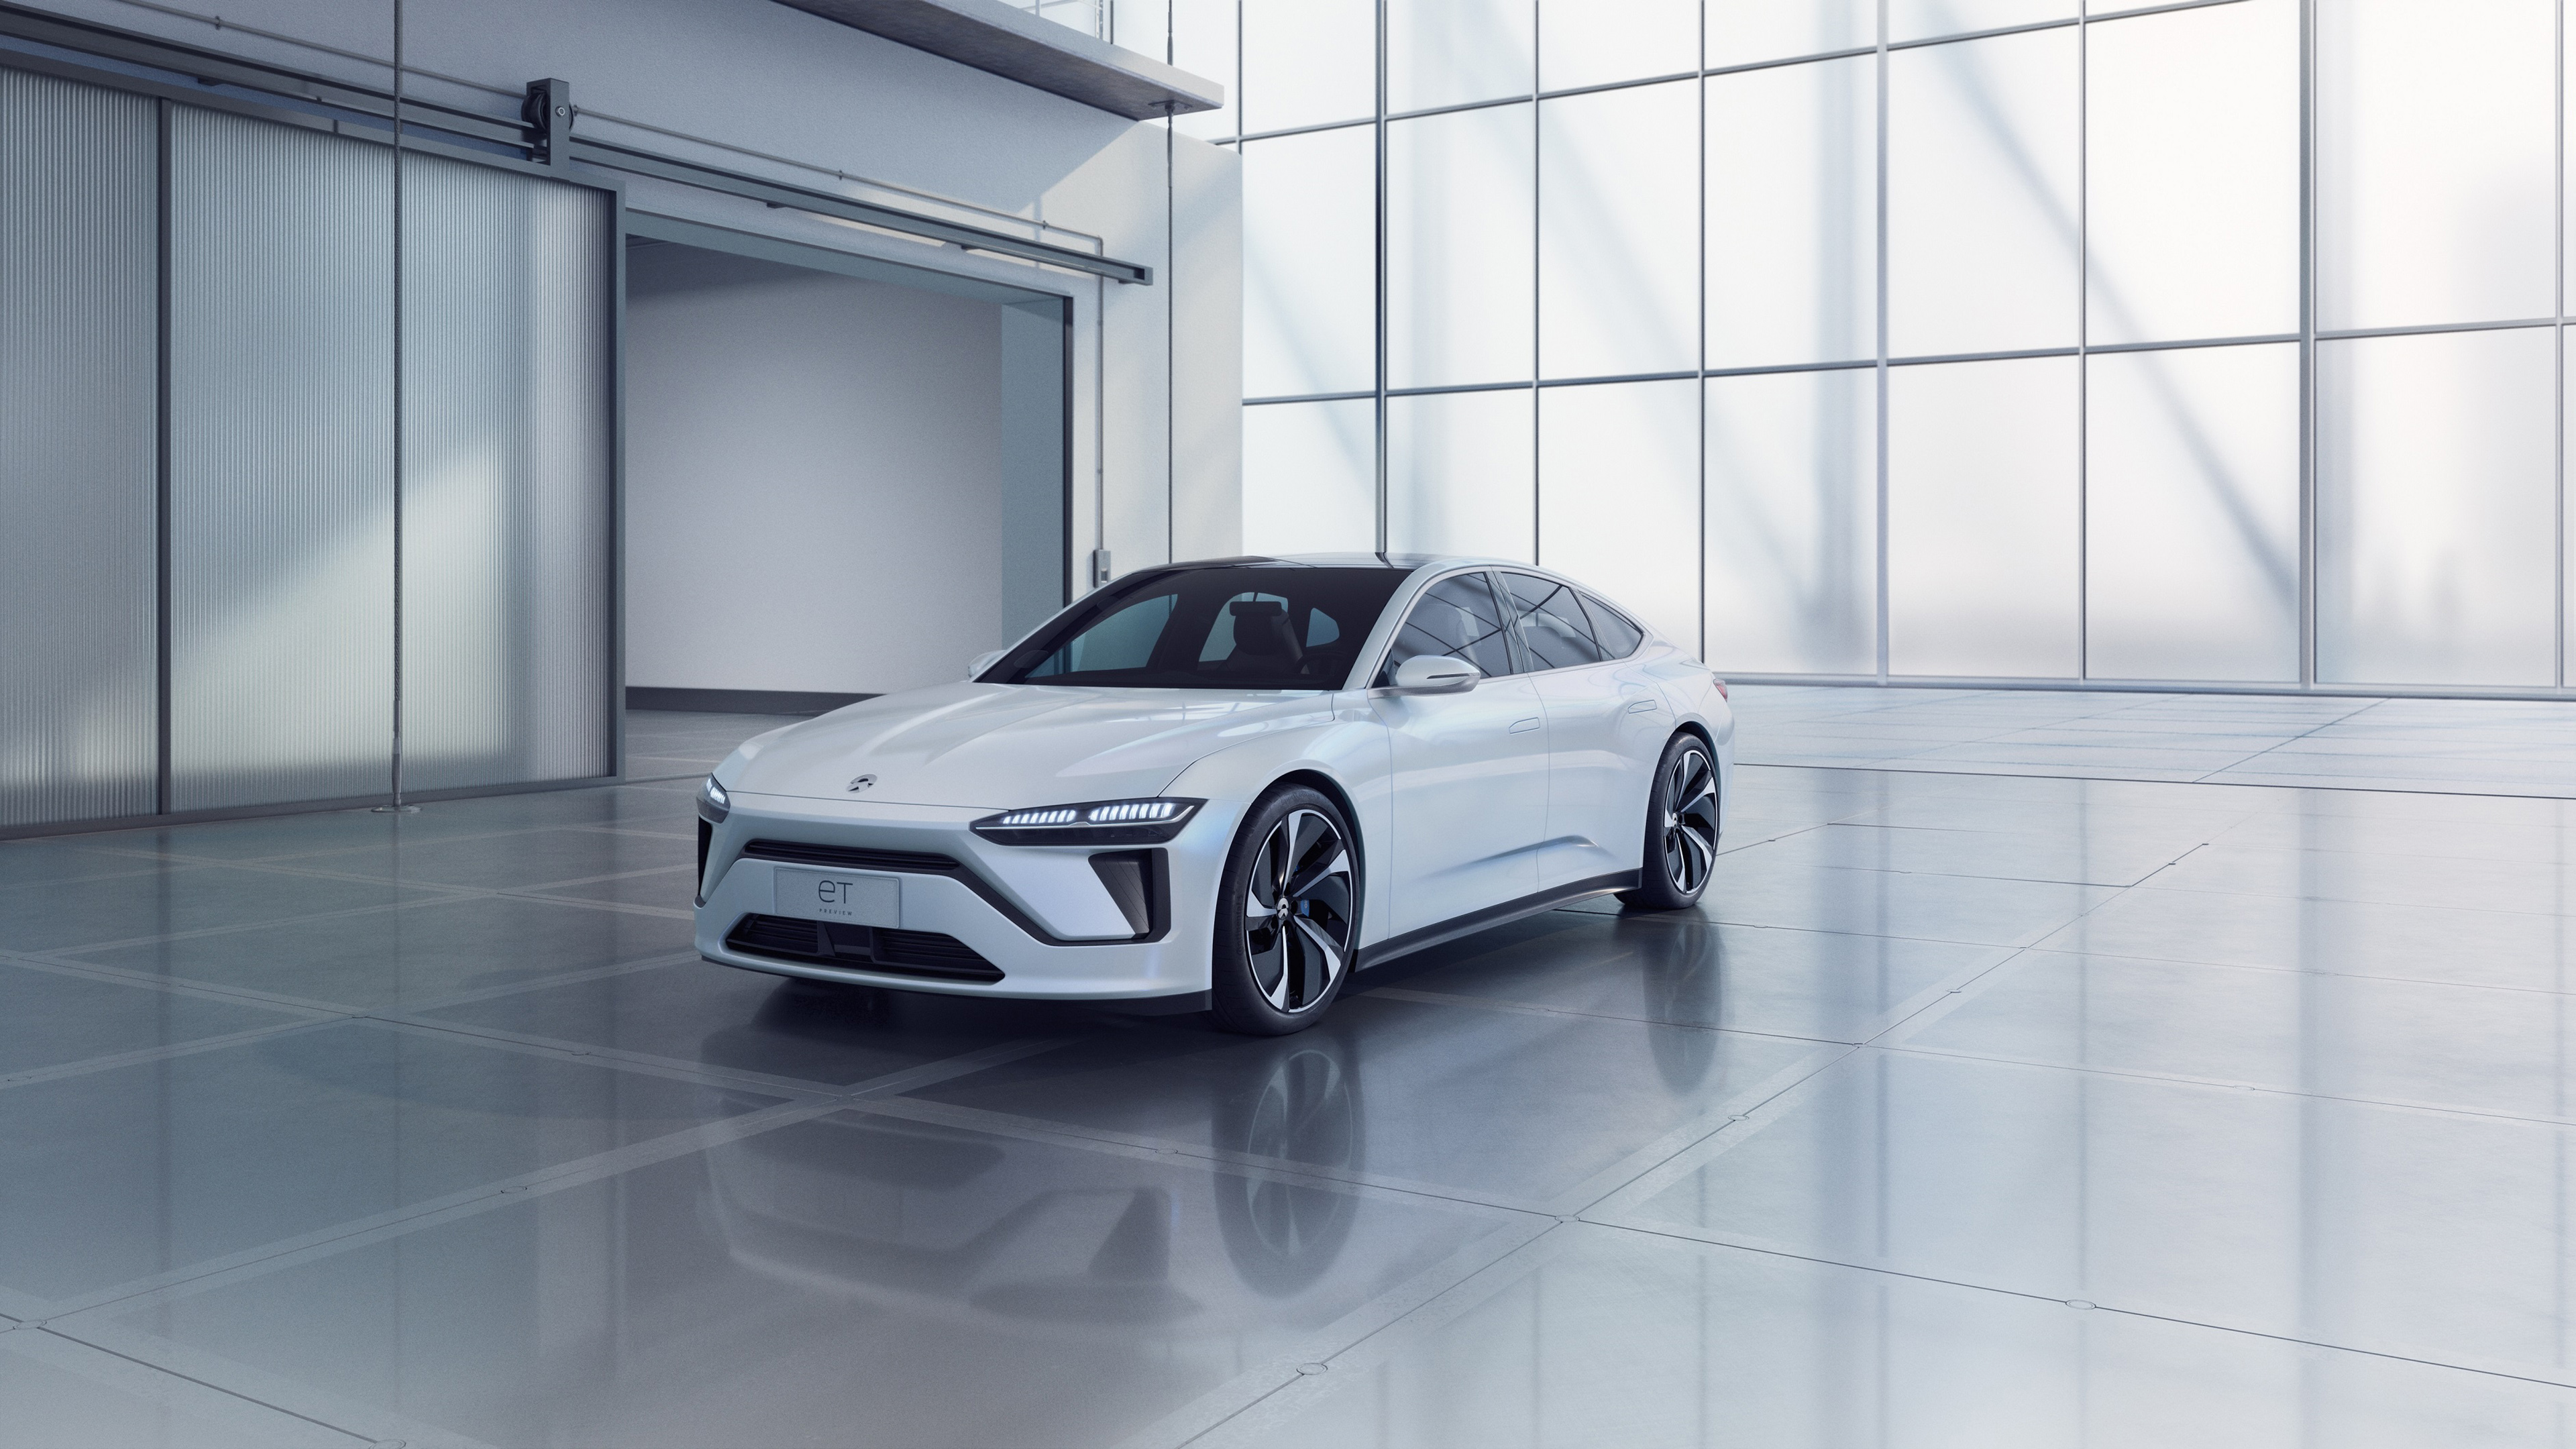 Nio Et Preview Electric Sedan 2019 4k Wallpaper Hd Car